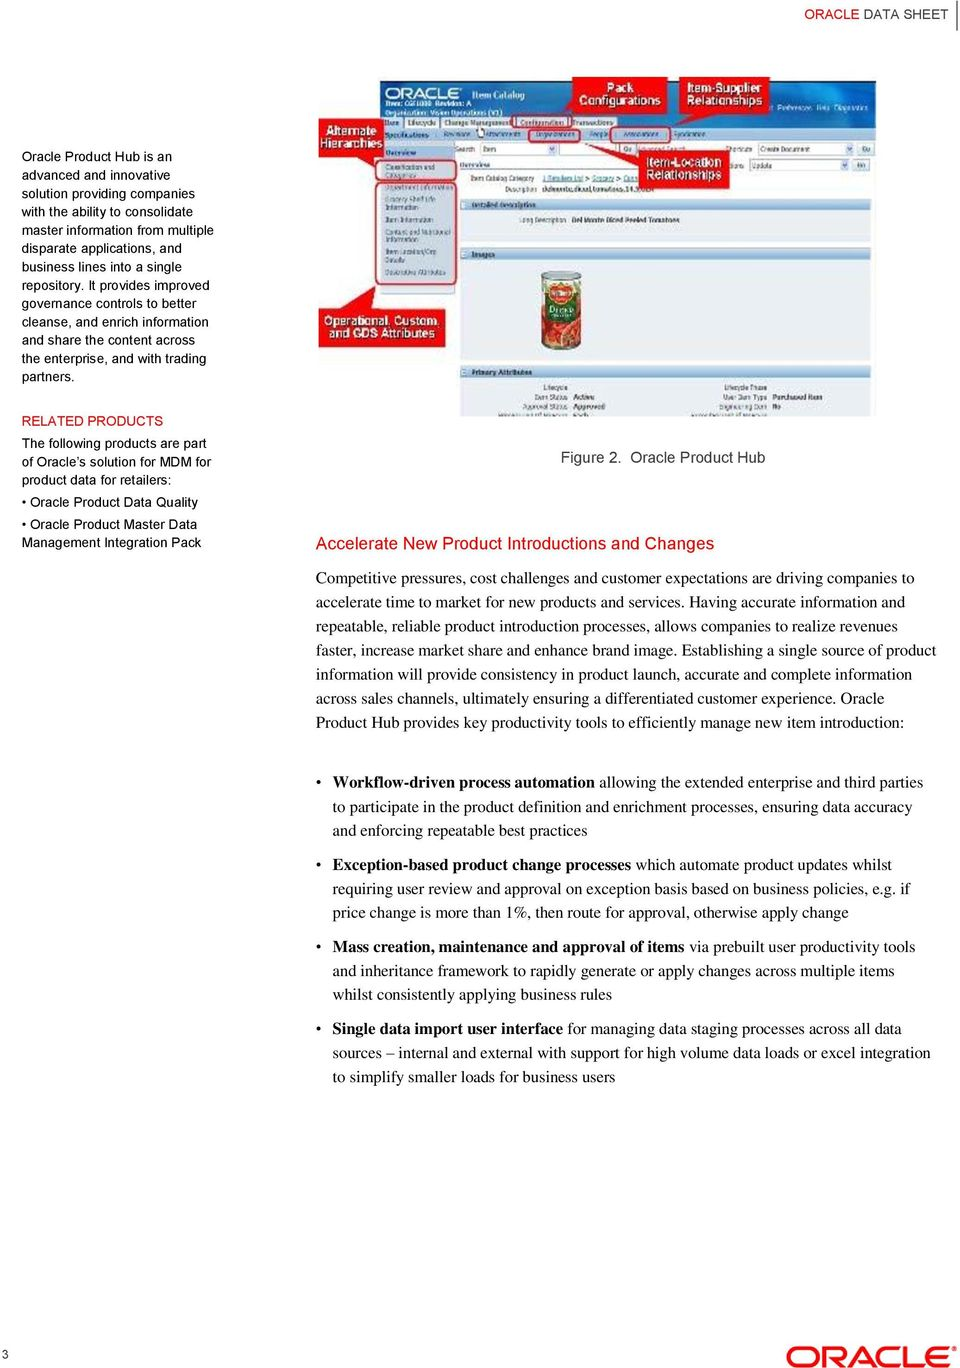 RELATED PRODUCTS The following products are part of Oracle s solution for MDM for product data for retailers: Oracle Product Data Quality Oracle Product Master Data Management Integration Pack Figure